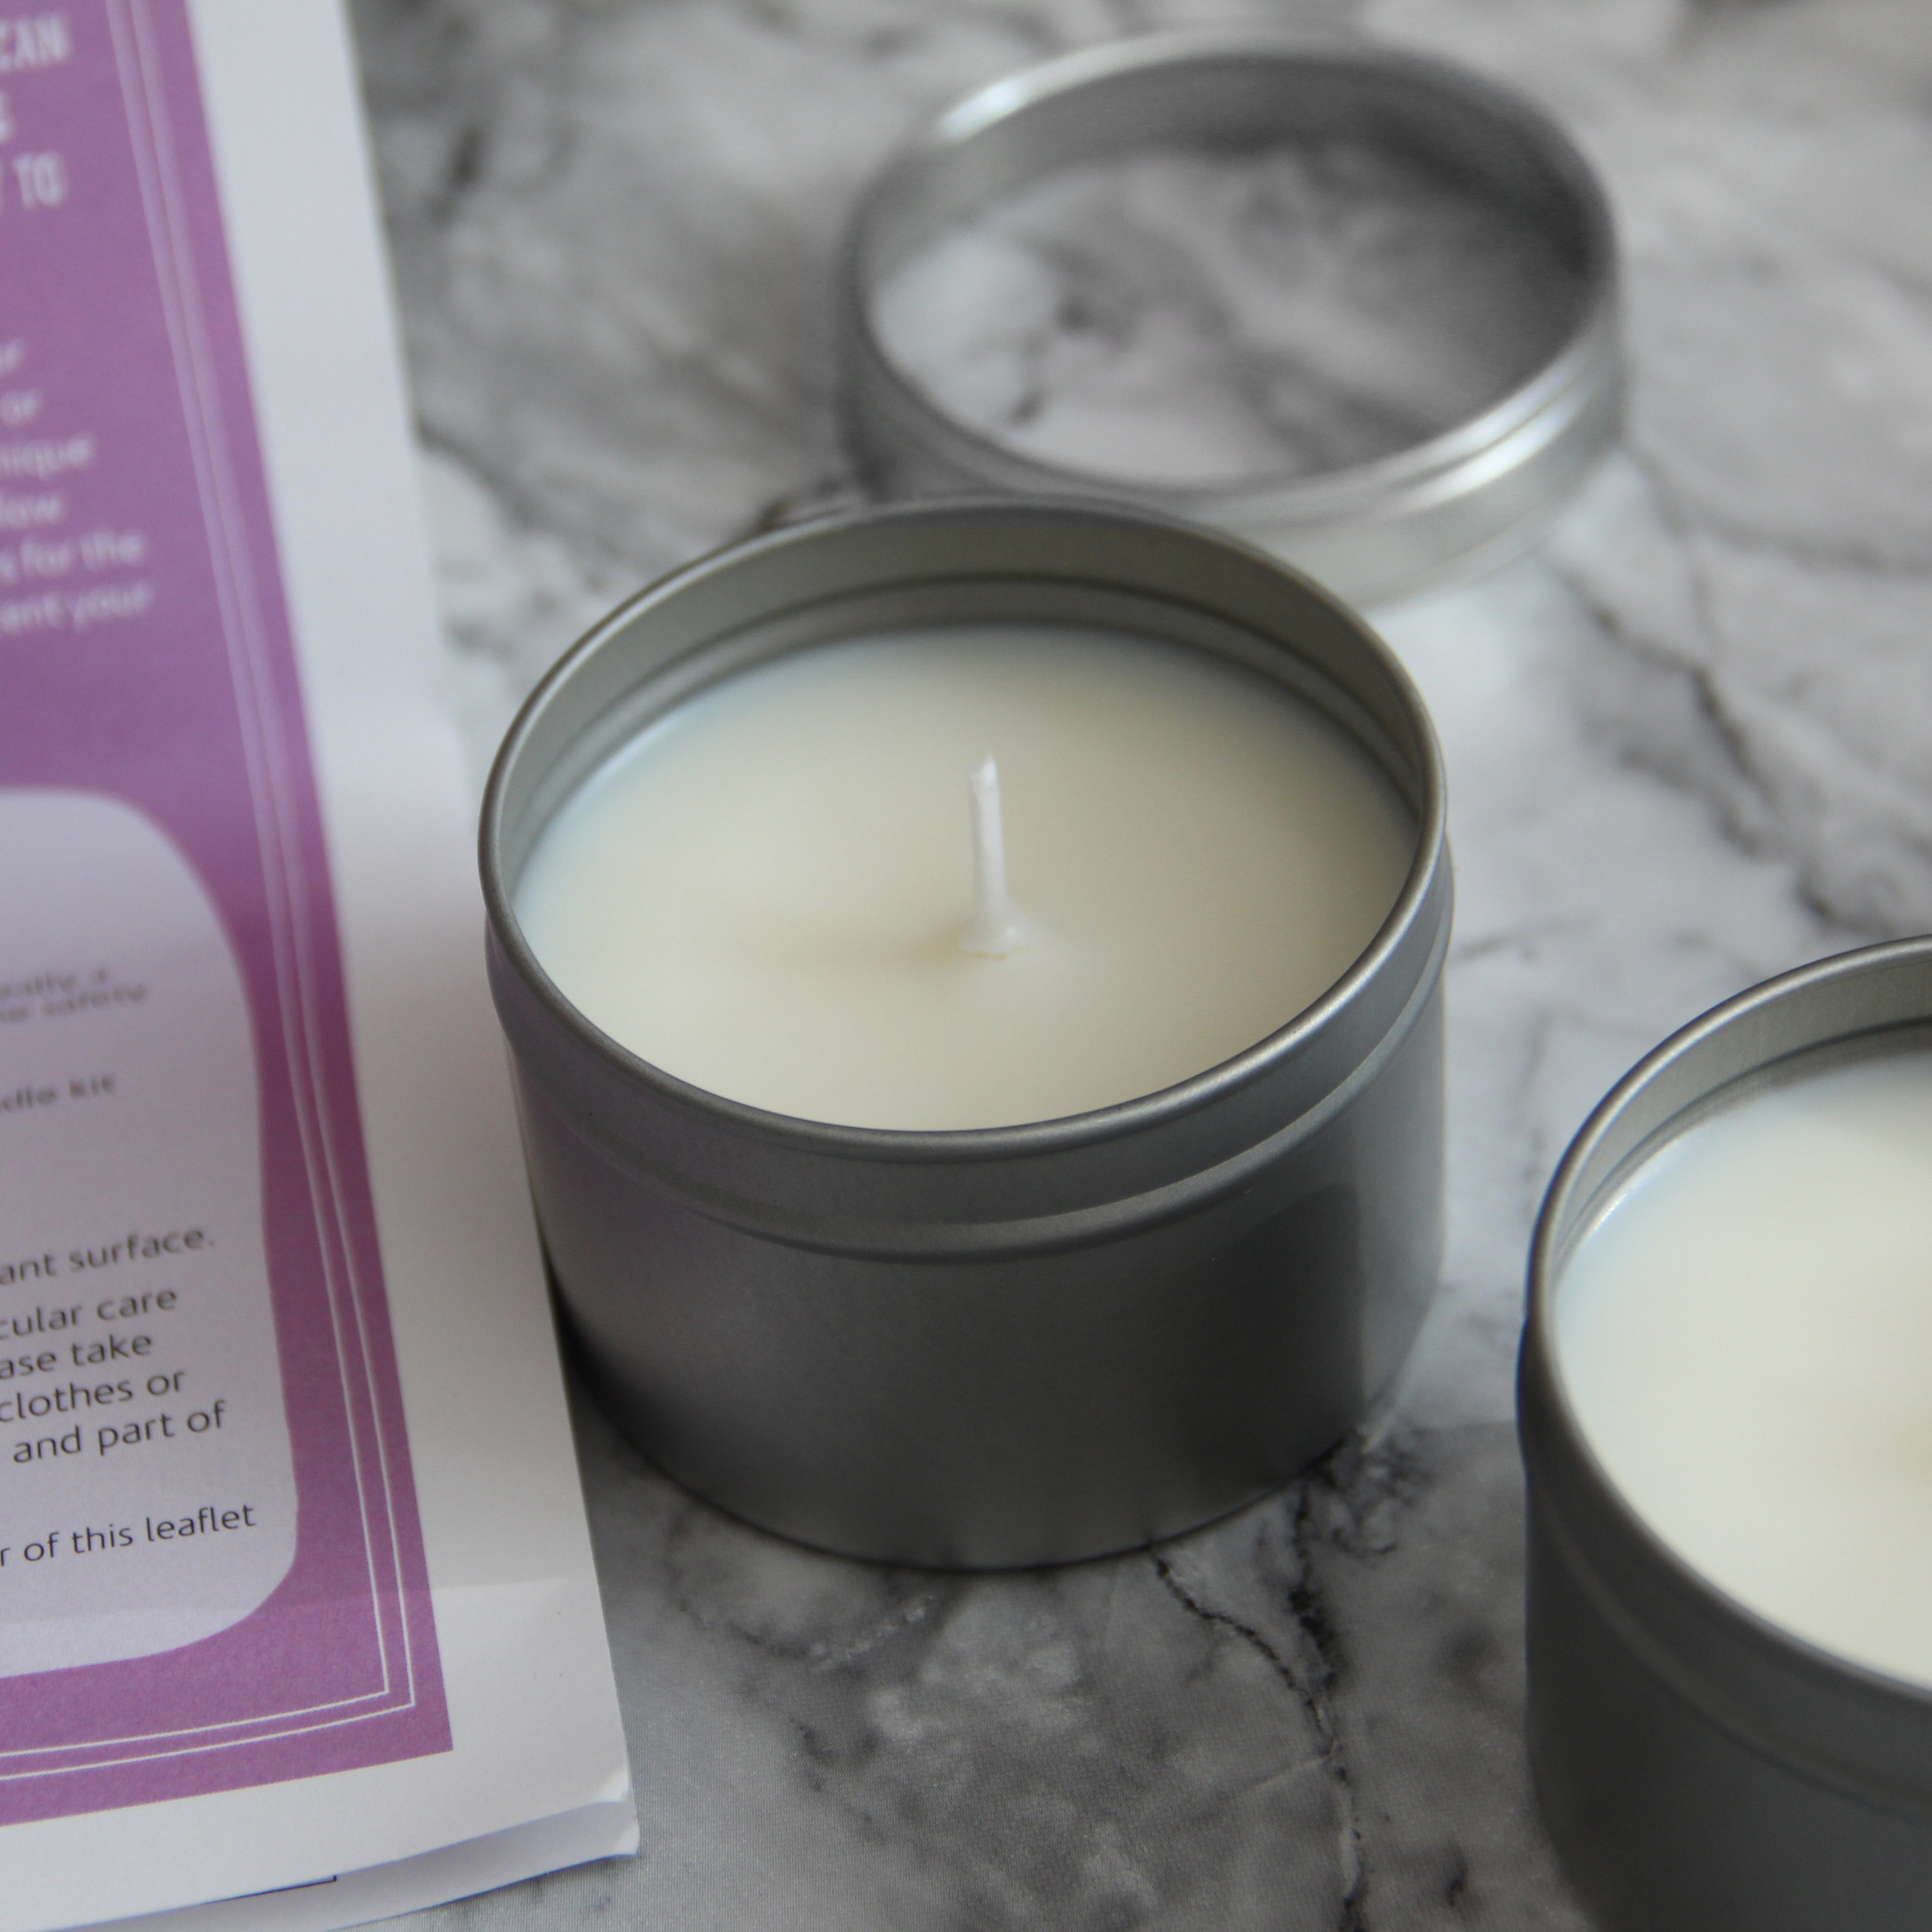 Homemade Candle Recipe - Candle Making Kits by Northumbrian Candleworks